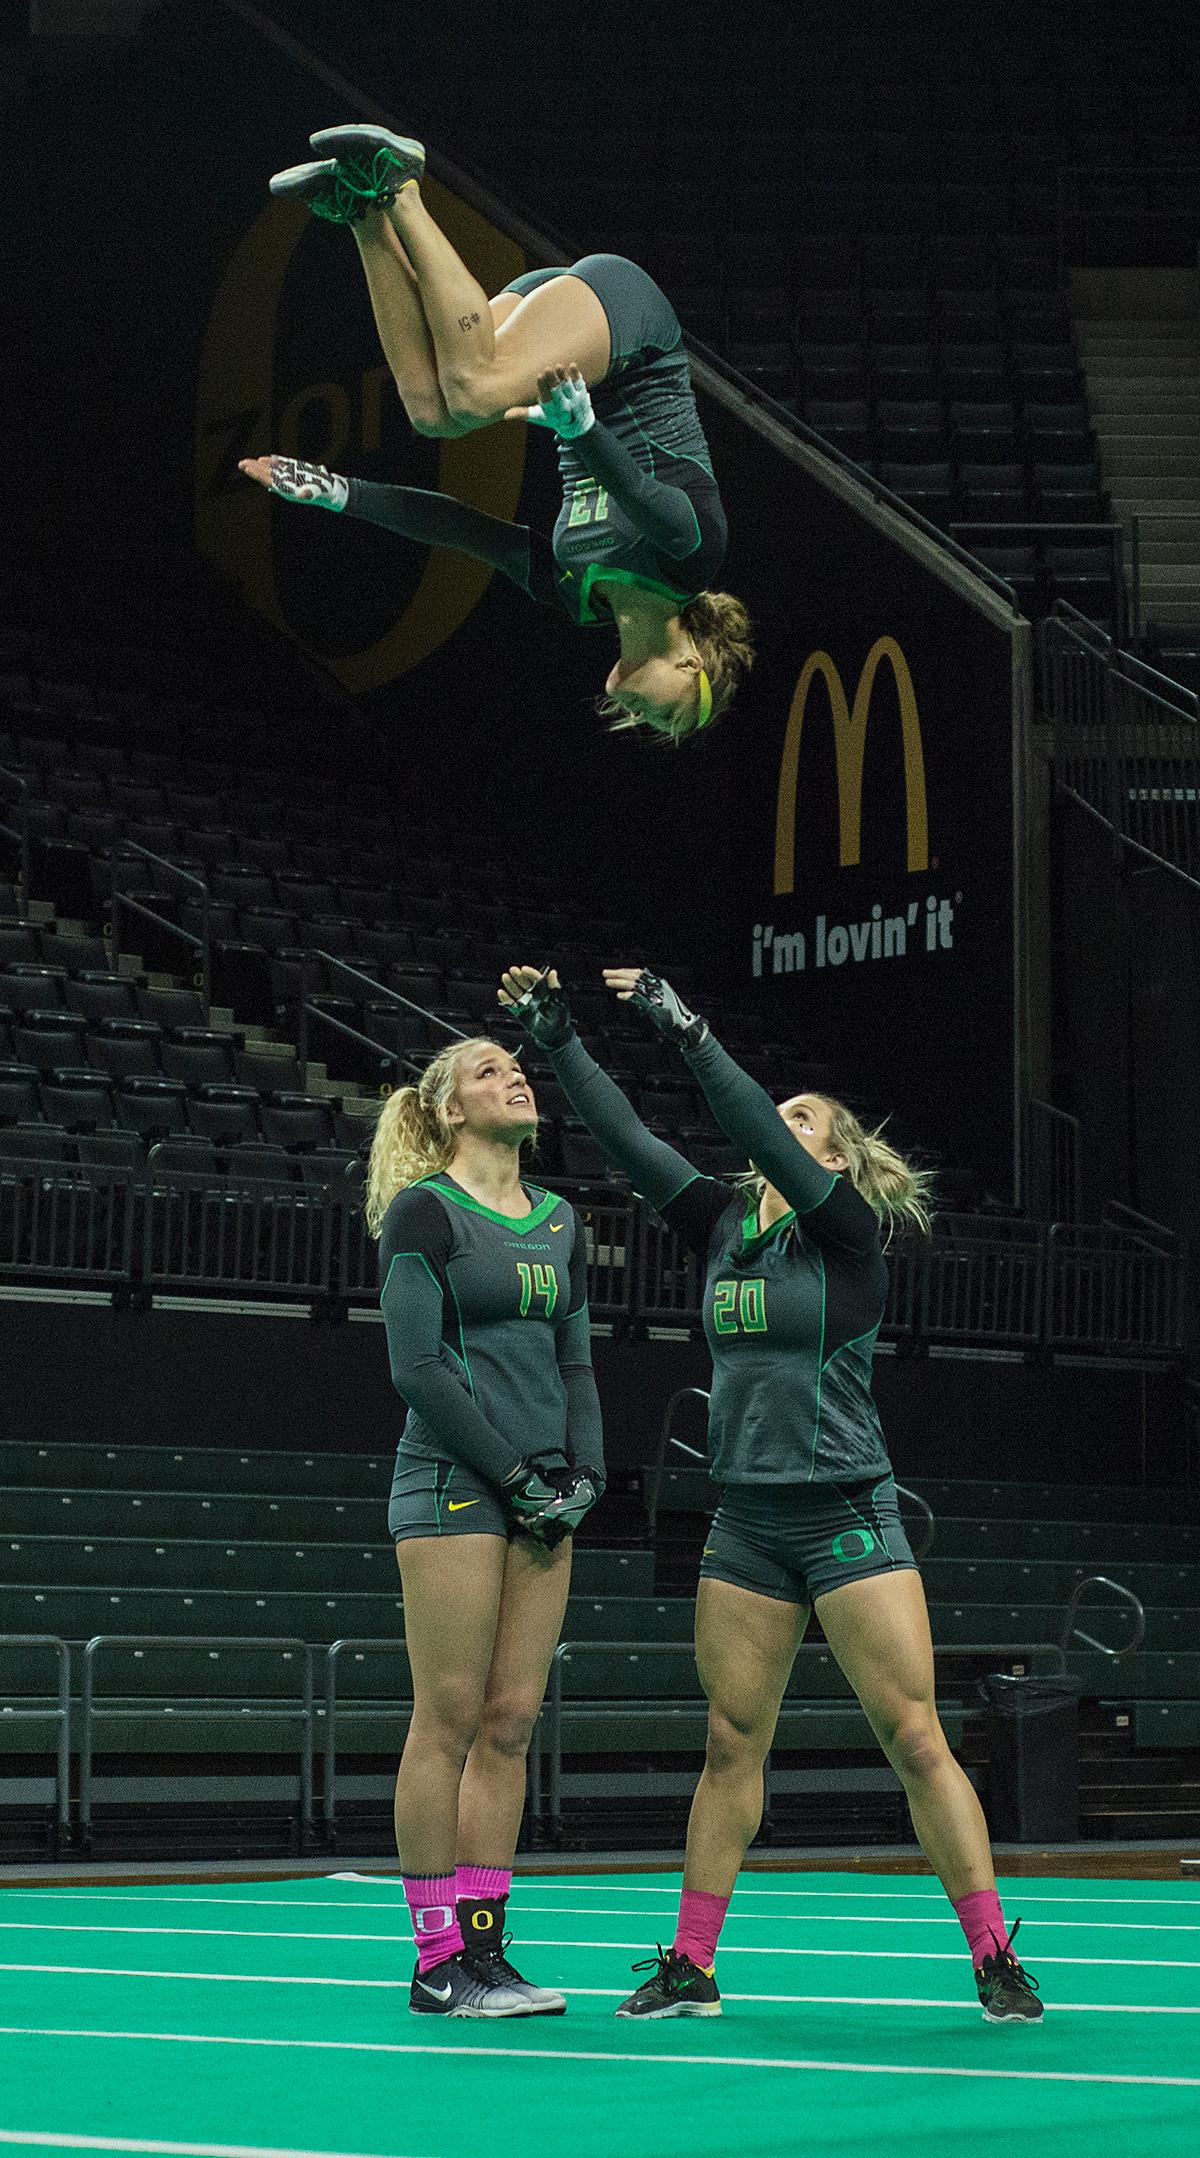 The Oregon Ducks Acro and Tumbling team defeated Hawaii Pacific in their second meet of the season and their first home meet with a score of 280.10 to 267.595. The Ducks won all six categories: 38.45 to 38.30 in compulsory; 29.55 to 28.55 in acro; 29.50 to 28.40 in pyramid; 29.10 to 27.50 in toss; 56.30 to 54.075 in tumbling; and 97.20 to 90.77 in team. The Ducks next face off against their arch rivals the Baylor Bears at Baylor February 24 and then return to Matt Knight Arena for a Tri Meet against Quinnipac and Gannon on March 11. Photo by Abigail Winn, Oregon News Lab